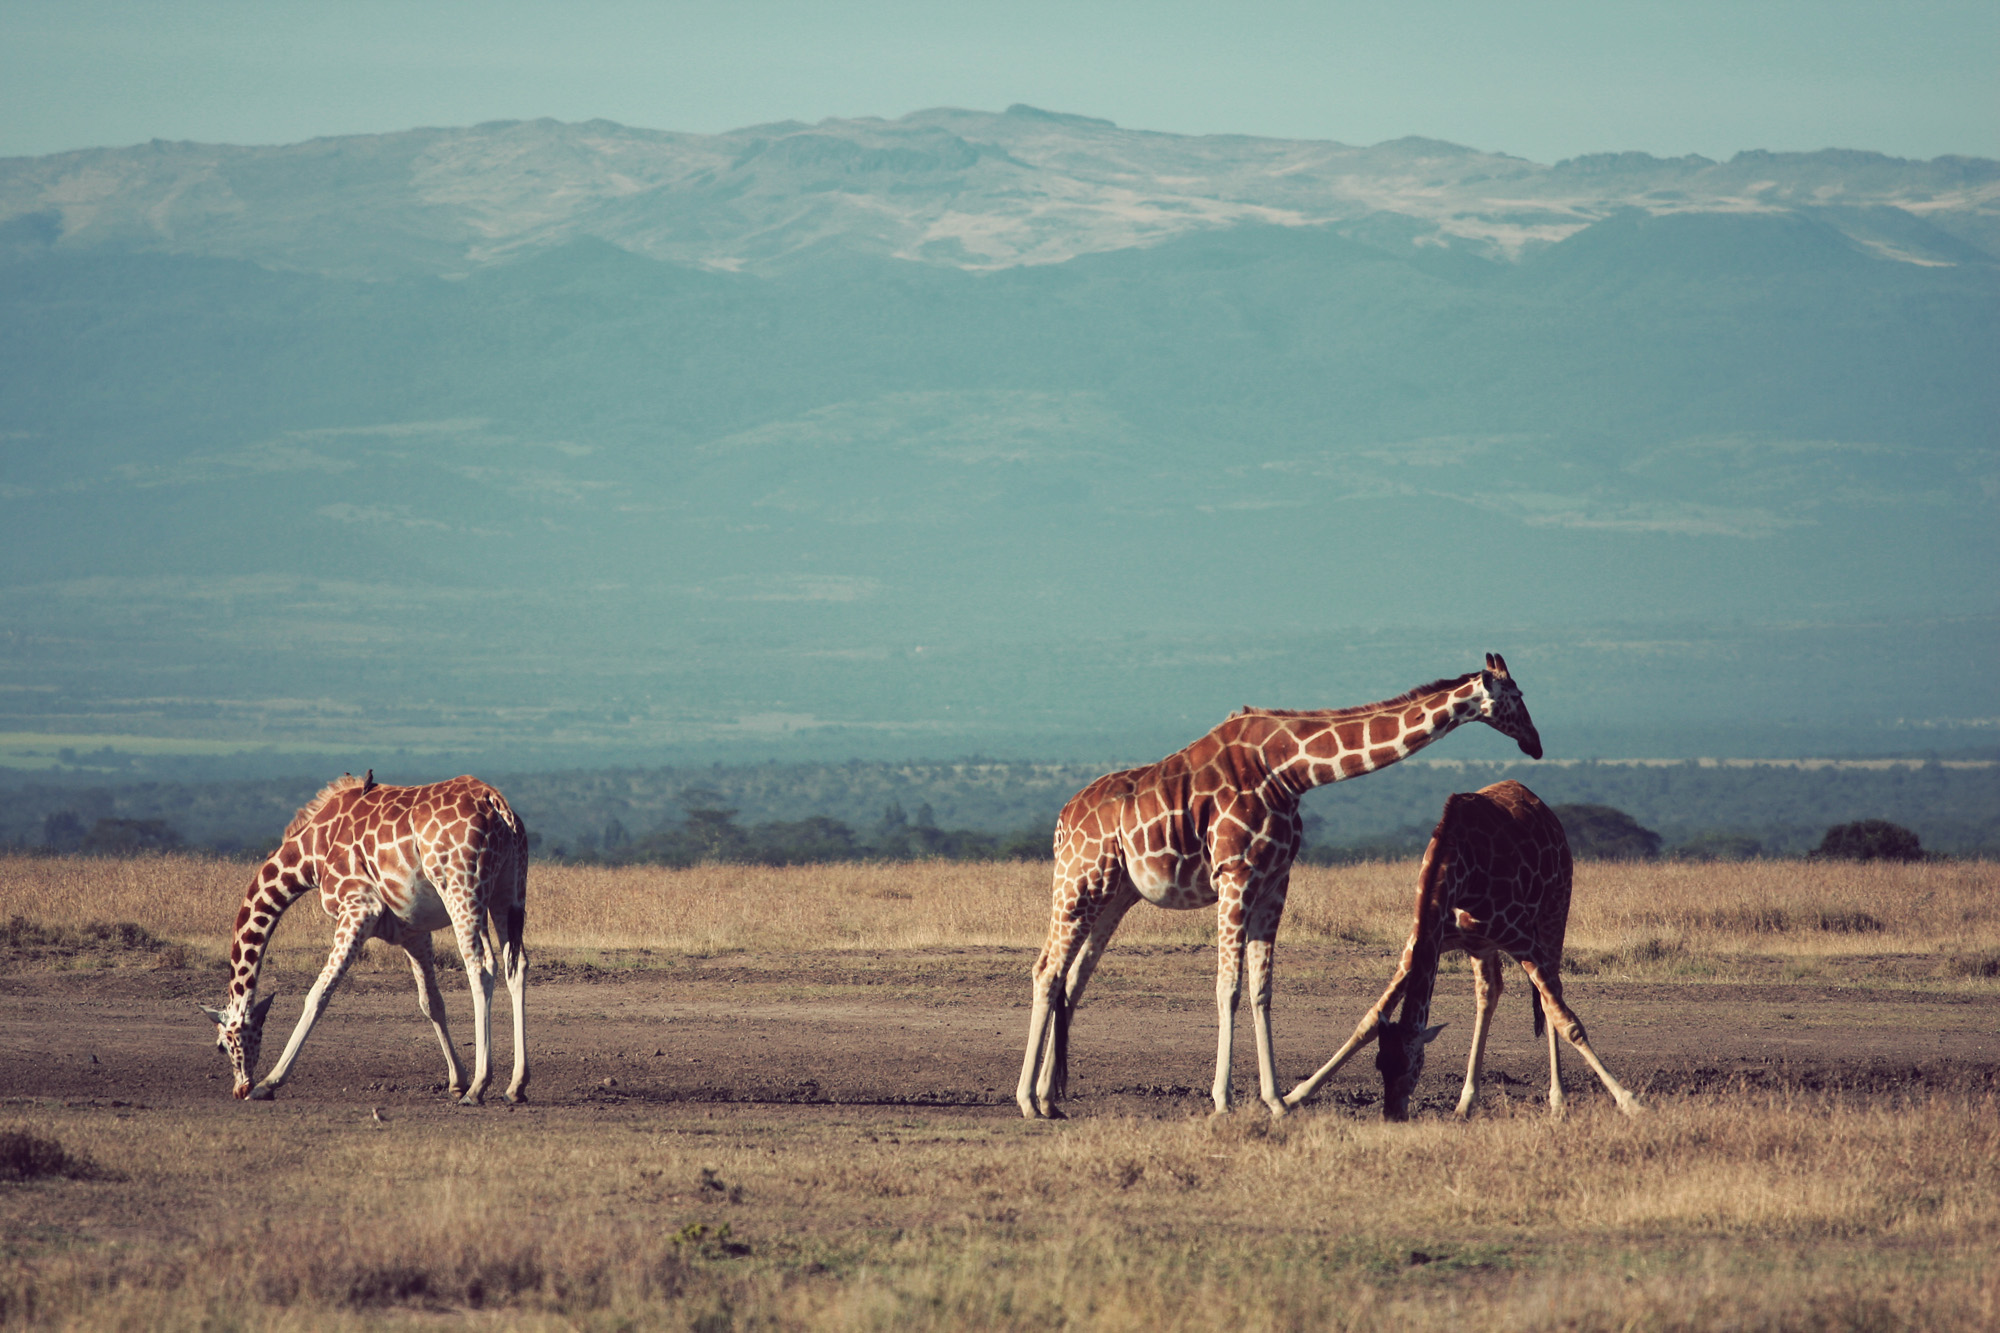 Day02_Sweetwater_Reticulated-Giraffes_03.jpg